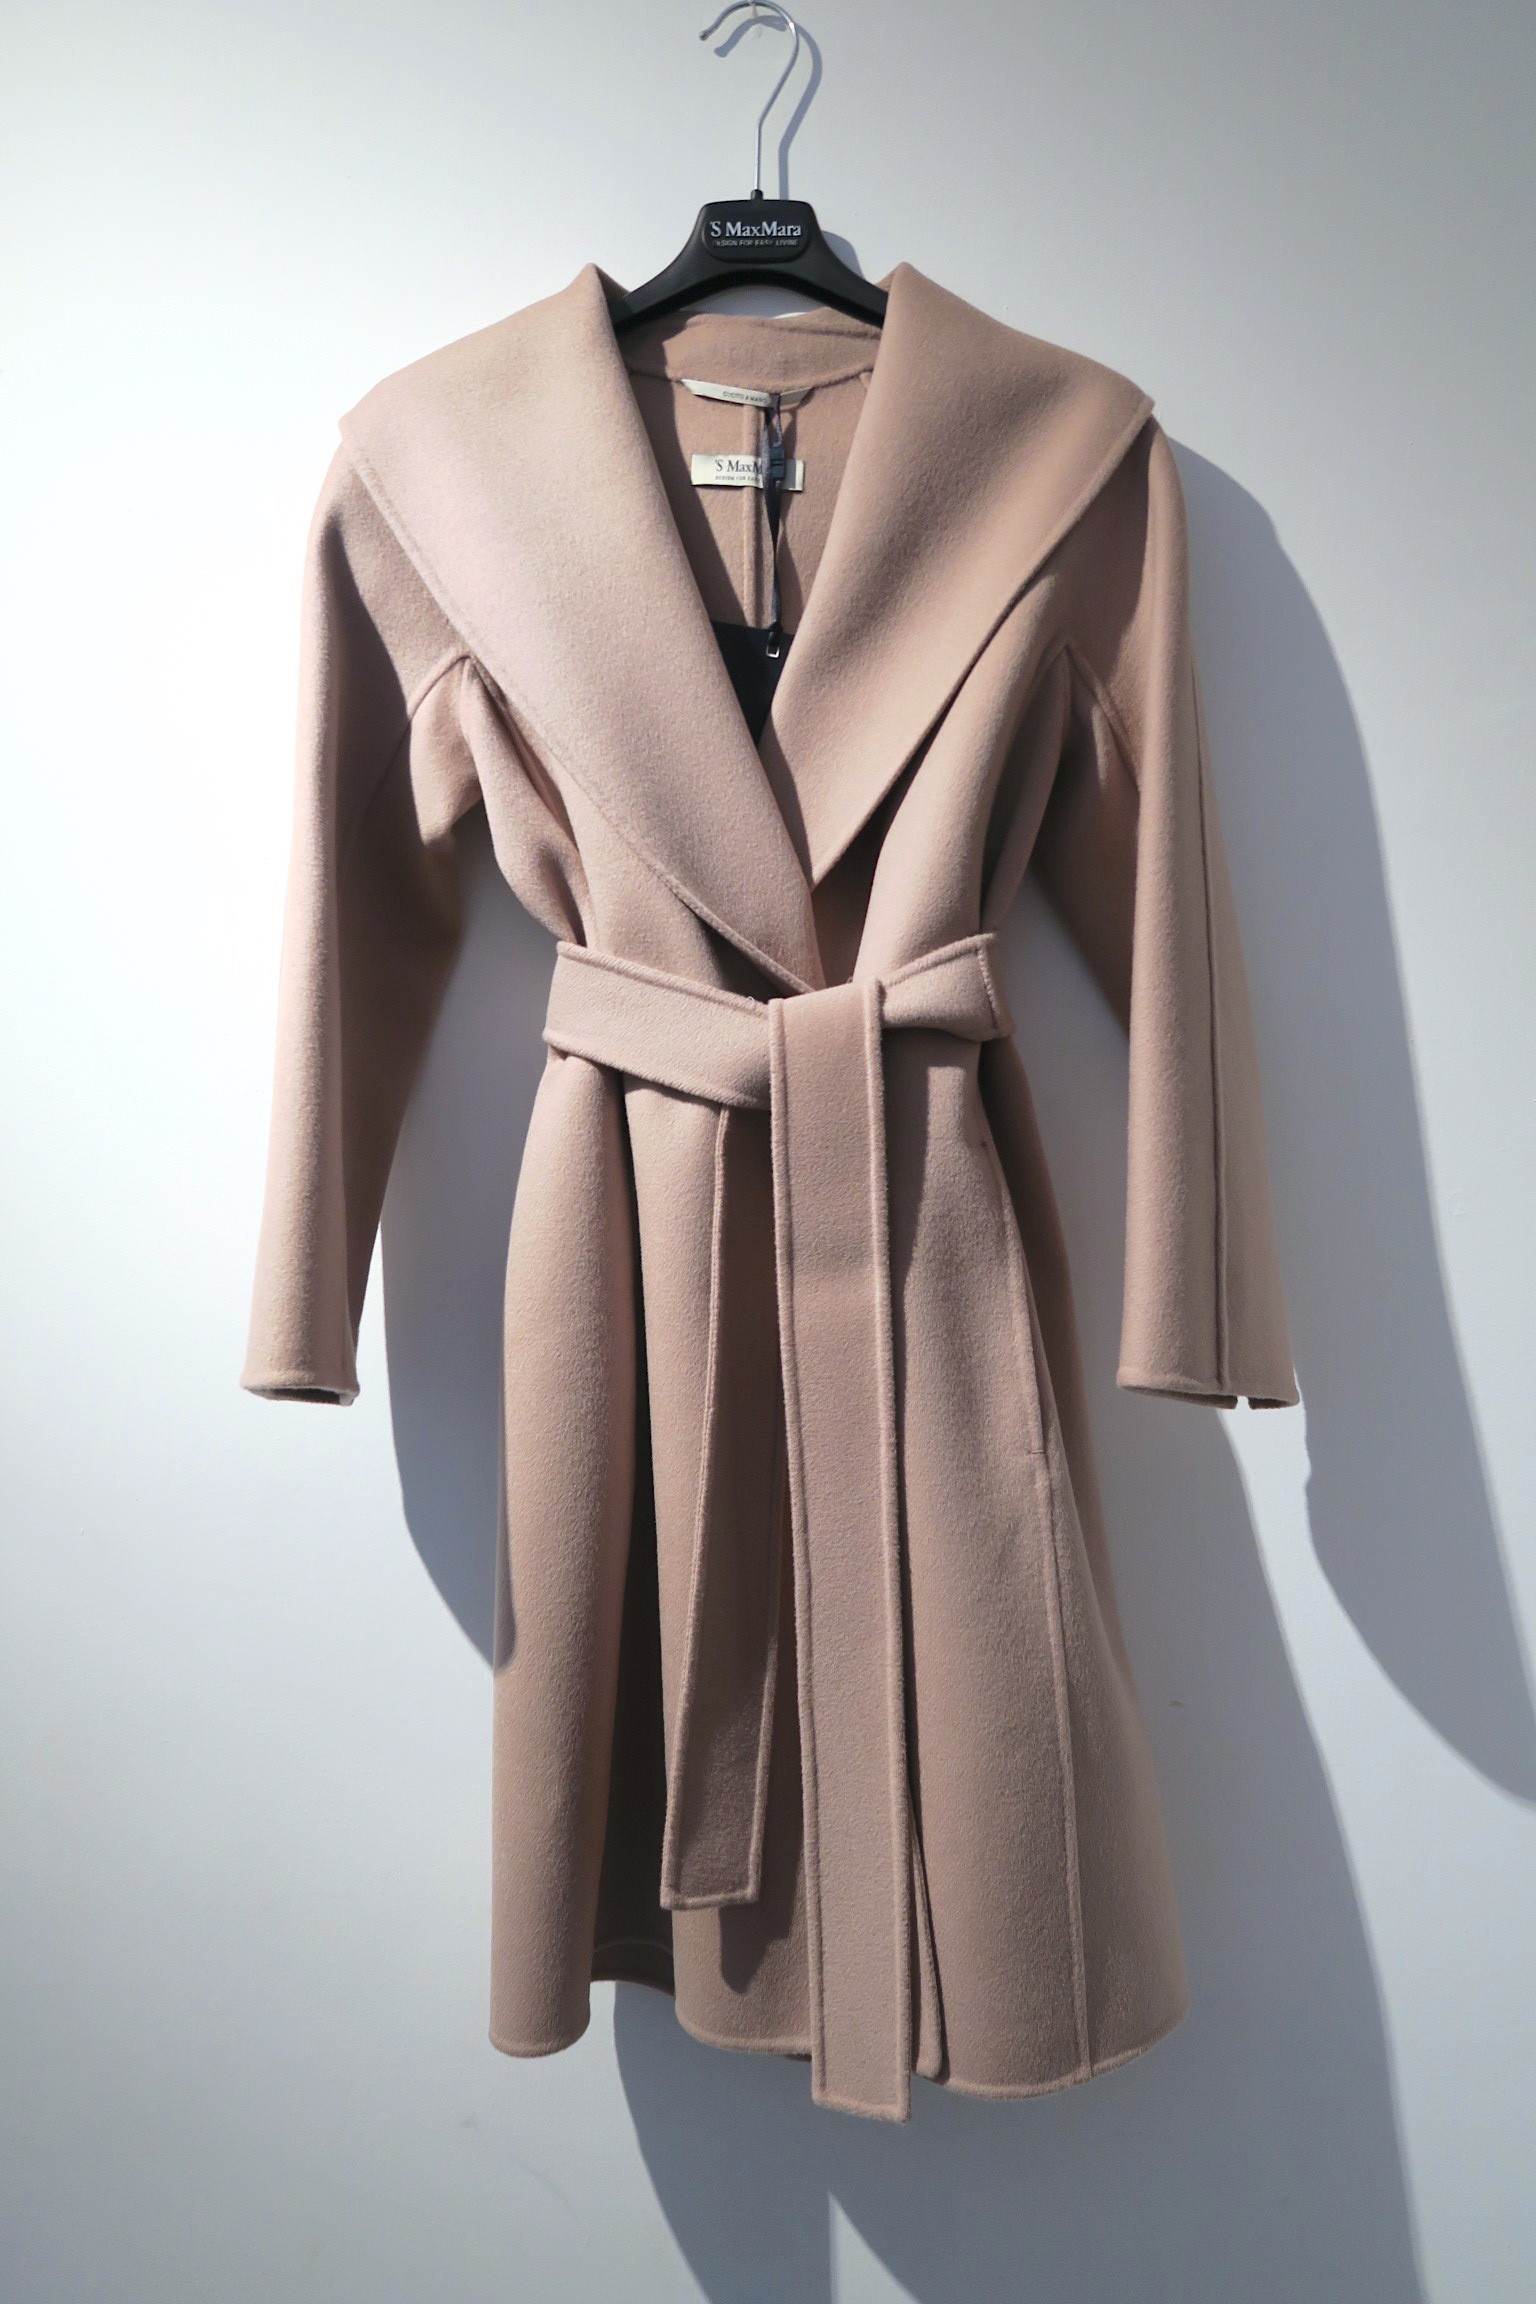 shop s max mara clothing